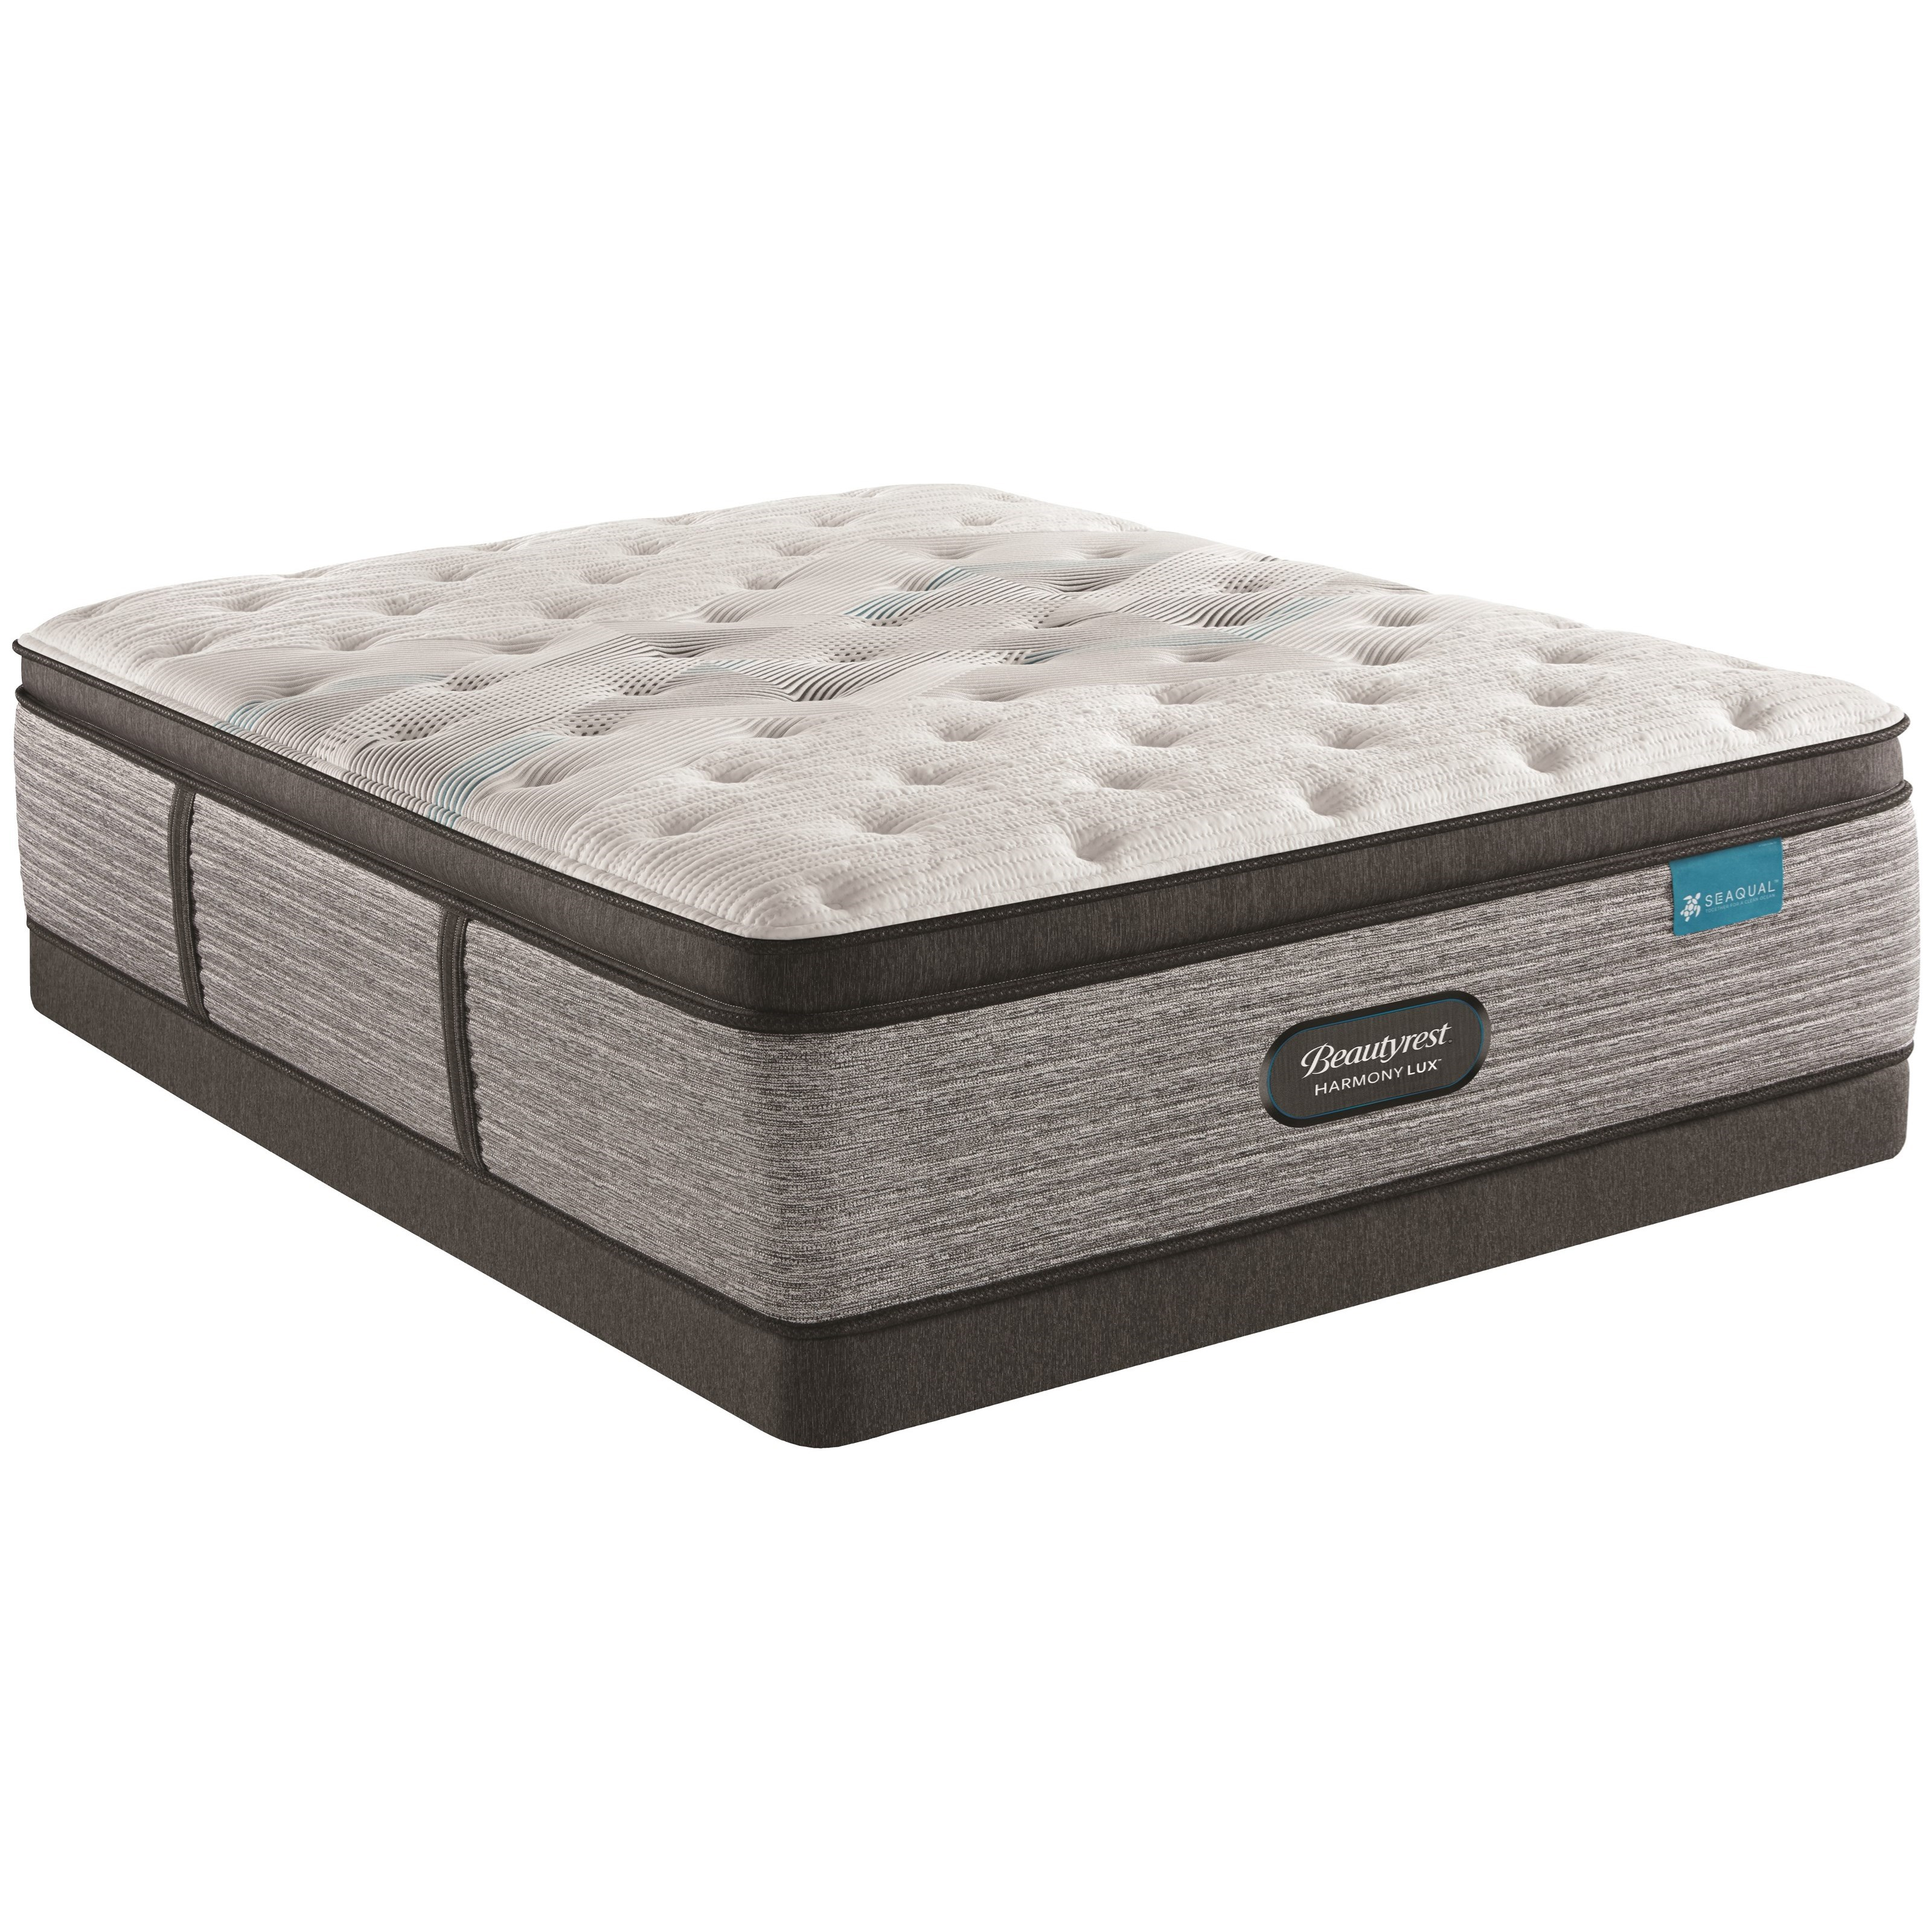 "Carbon Series Medium PT Twin 15 3/4"" Medium PT Low Profile Set by Beautyrest at Rotmans"